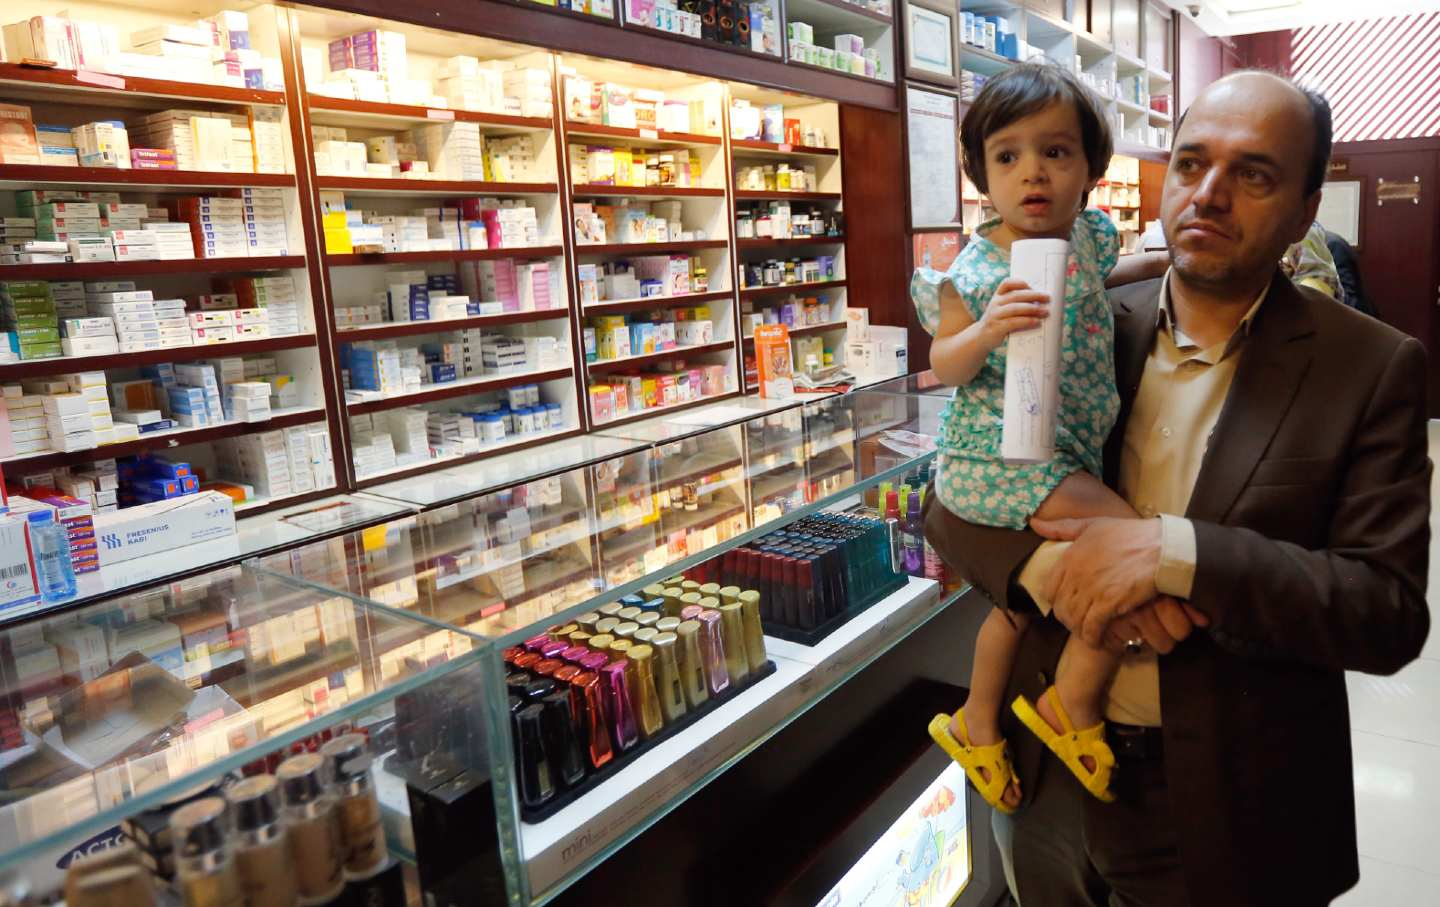 An Iranian man and child in a drugstore, 2018